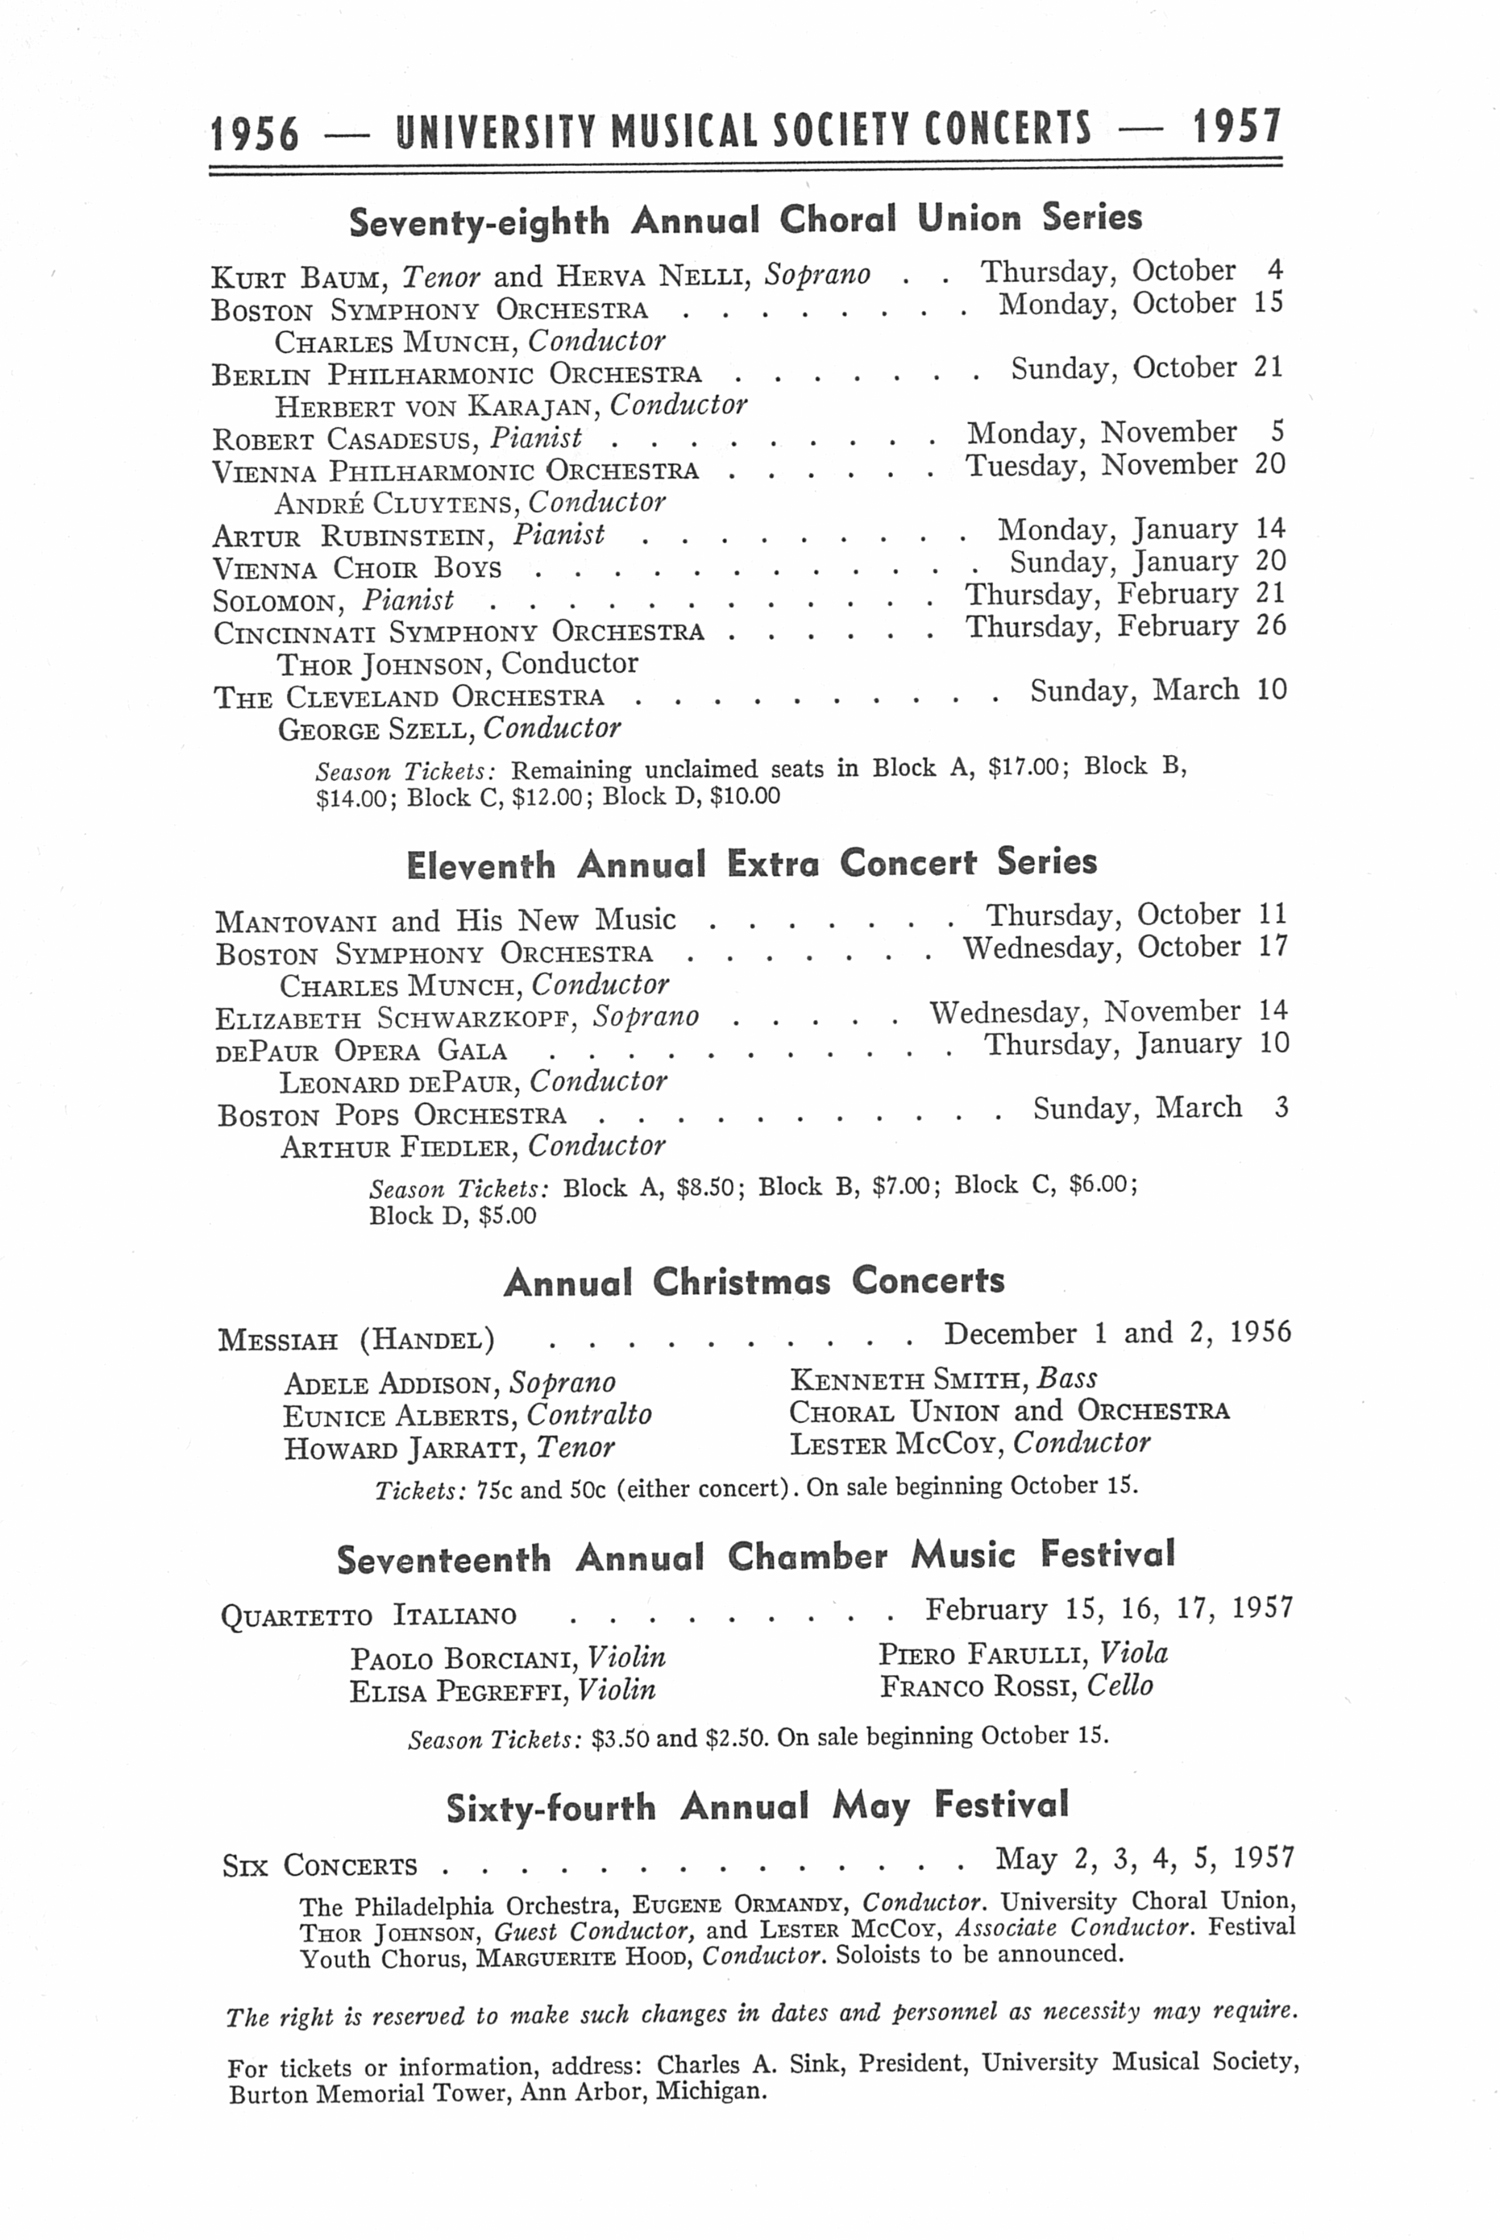 UMS Concert Program, May 4, 1956: Sixty-third Annual May Festival -- The Philadelphia Orchestra image